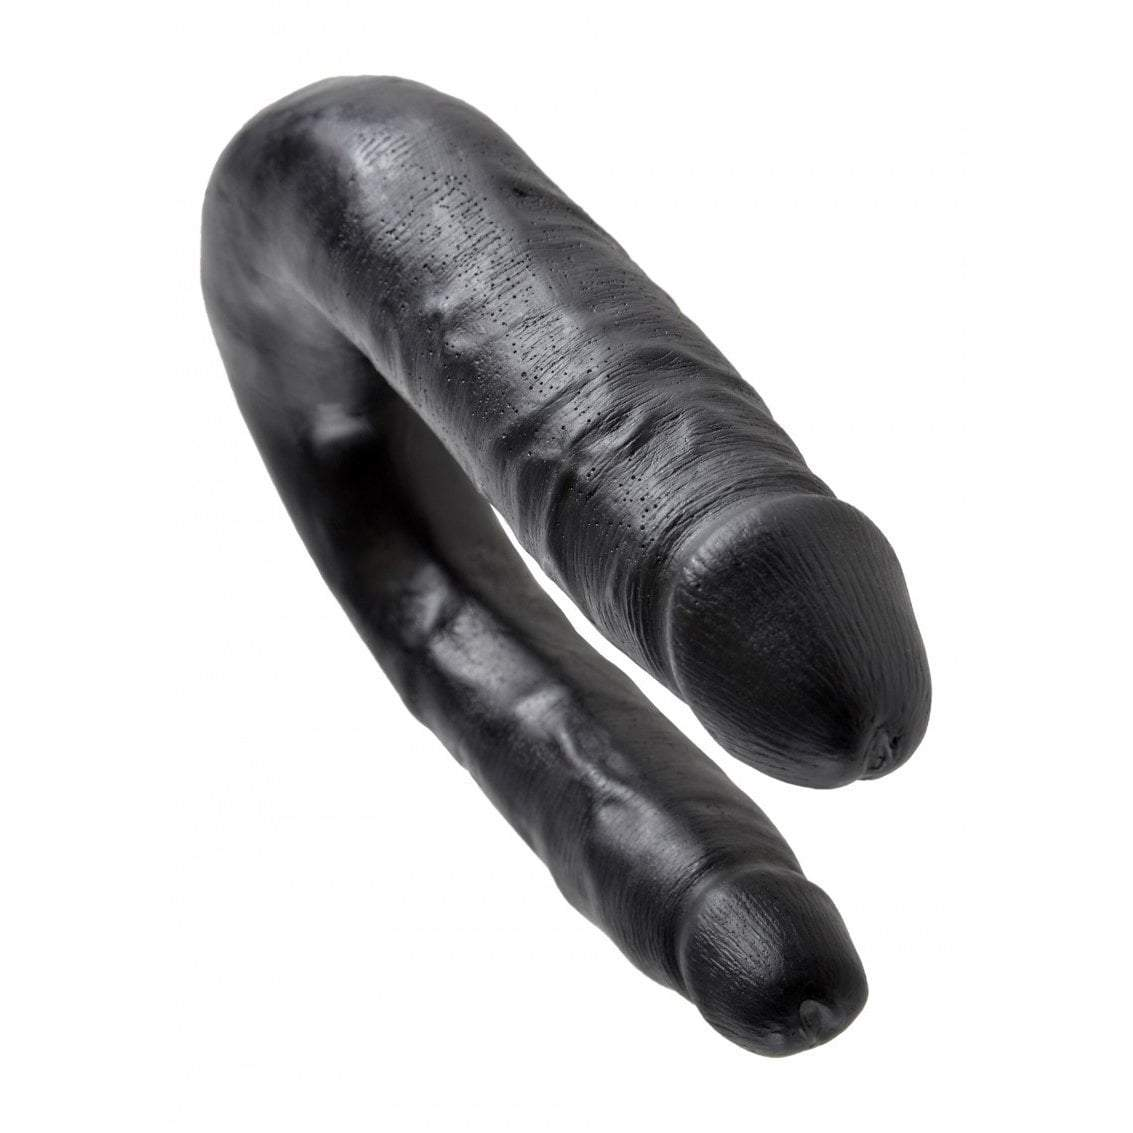 Pipedream - King Cock Double Trouble Dildo Small (Black) Double Dildo (Non Vibration)